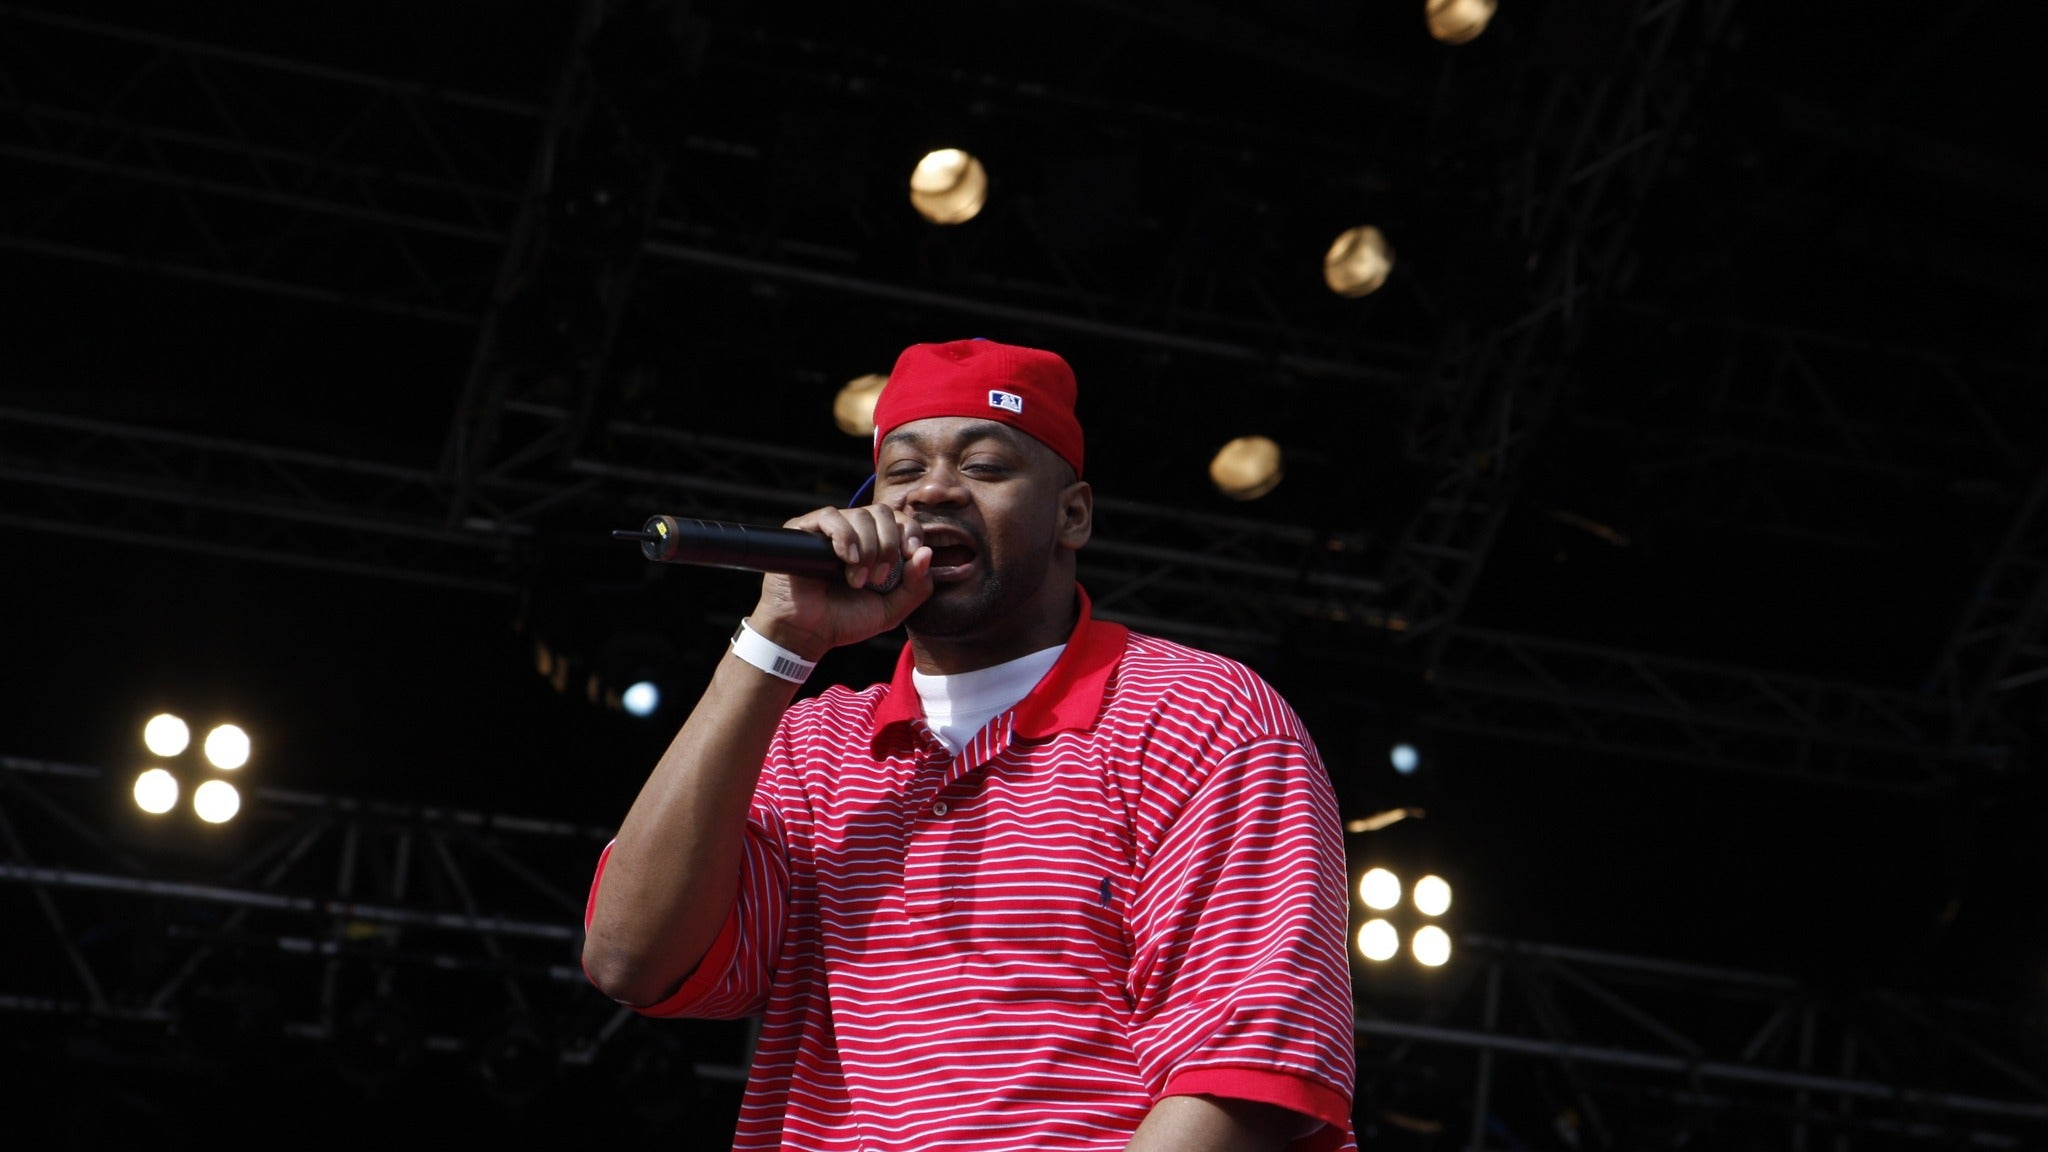 Ghostface Killah & Smoke Dza ($10 Show!) at The Observatory